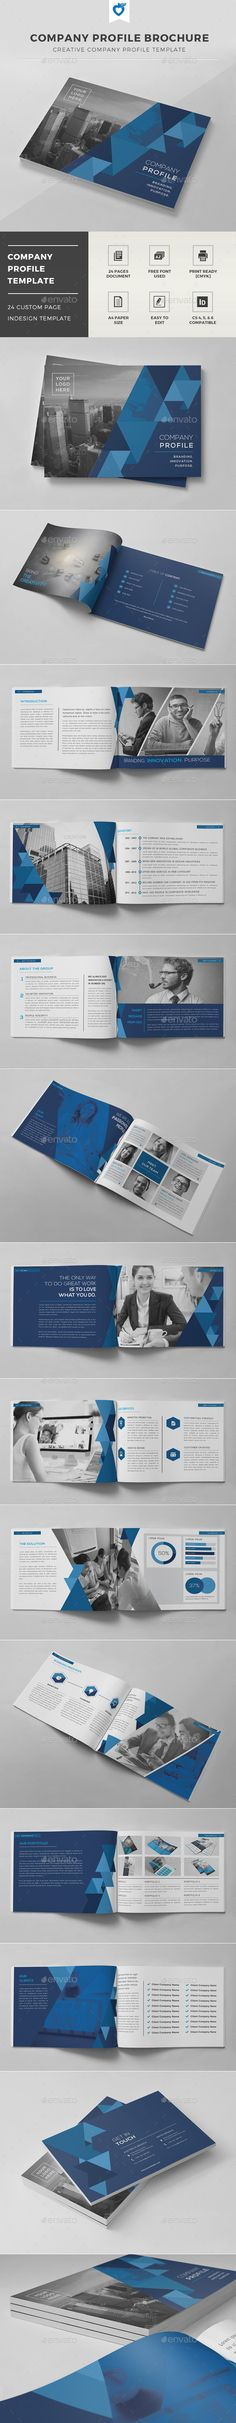 Company profile brochure template. This layout is suitable for any project purpose. Very easy to use and customise.